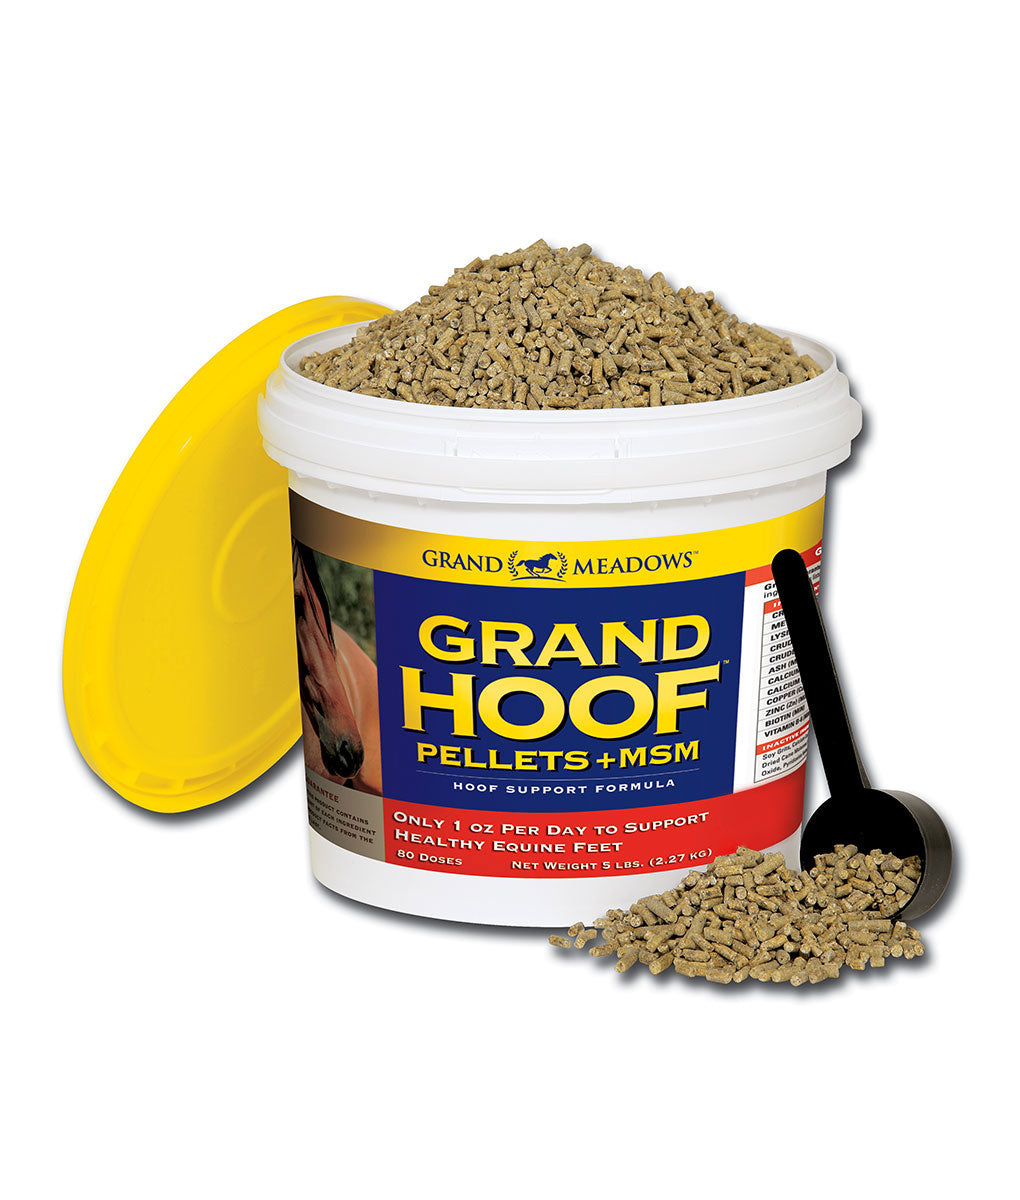 Grand Meadows - Grand Hoof Pellets + MSM